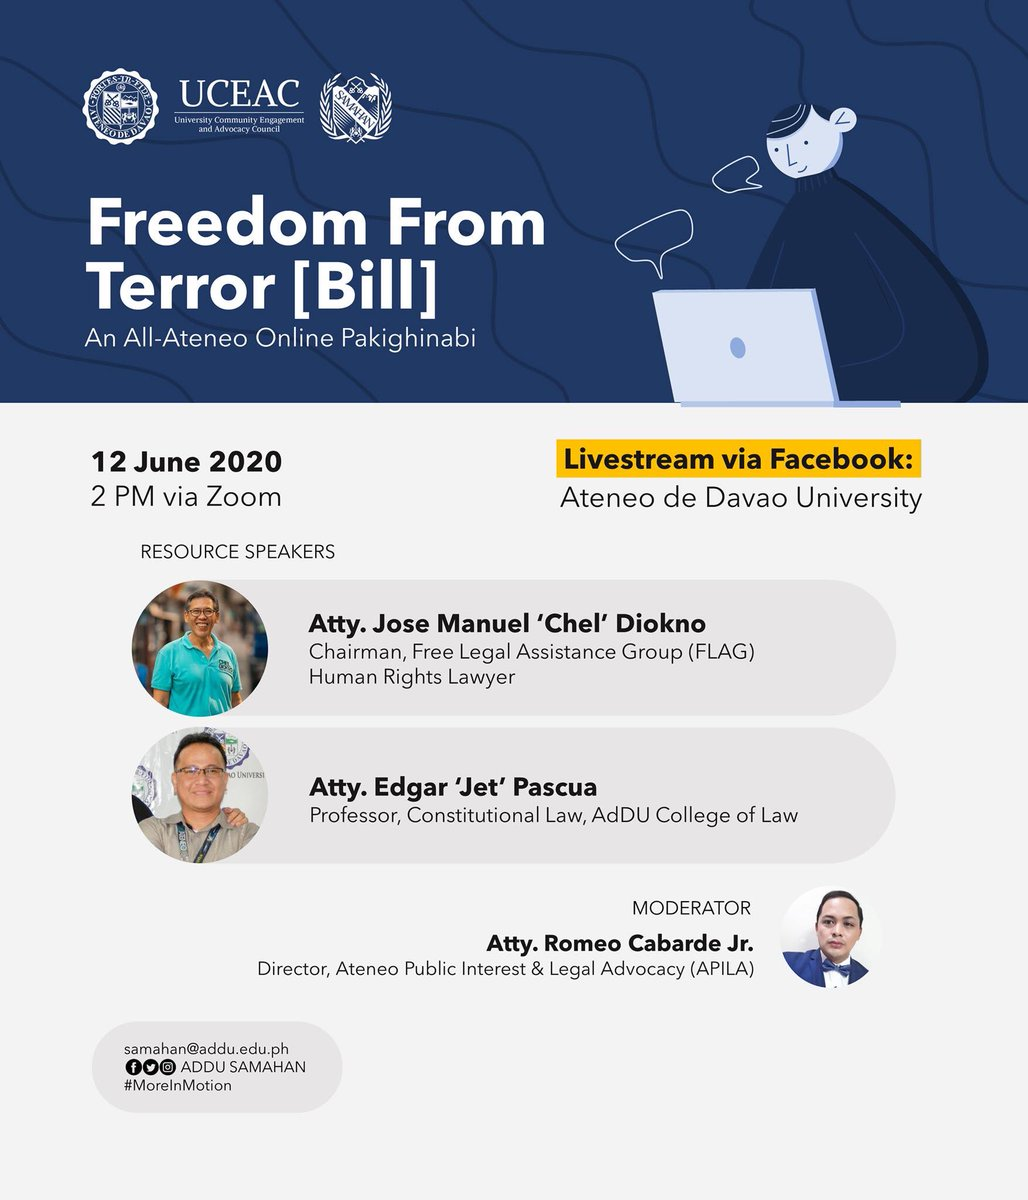 LIVE NOW | Freedom From Terror [Bill]: An All-Online Pakighinabi Link: bit.ly/AteneoFreedomF…